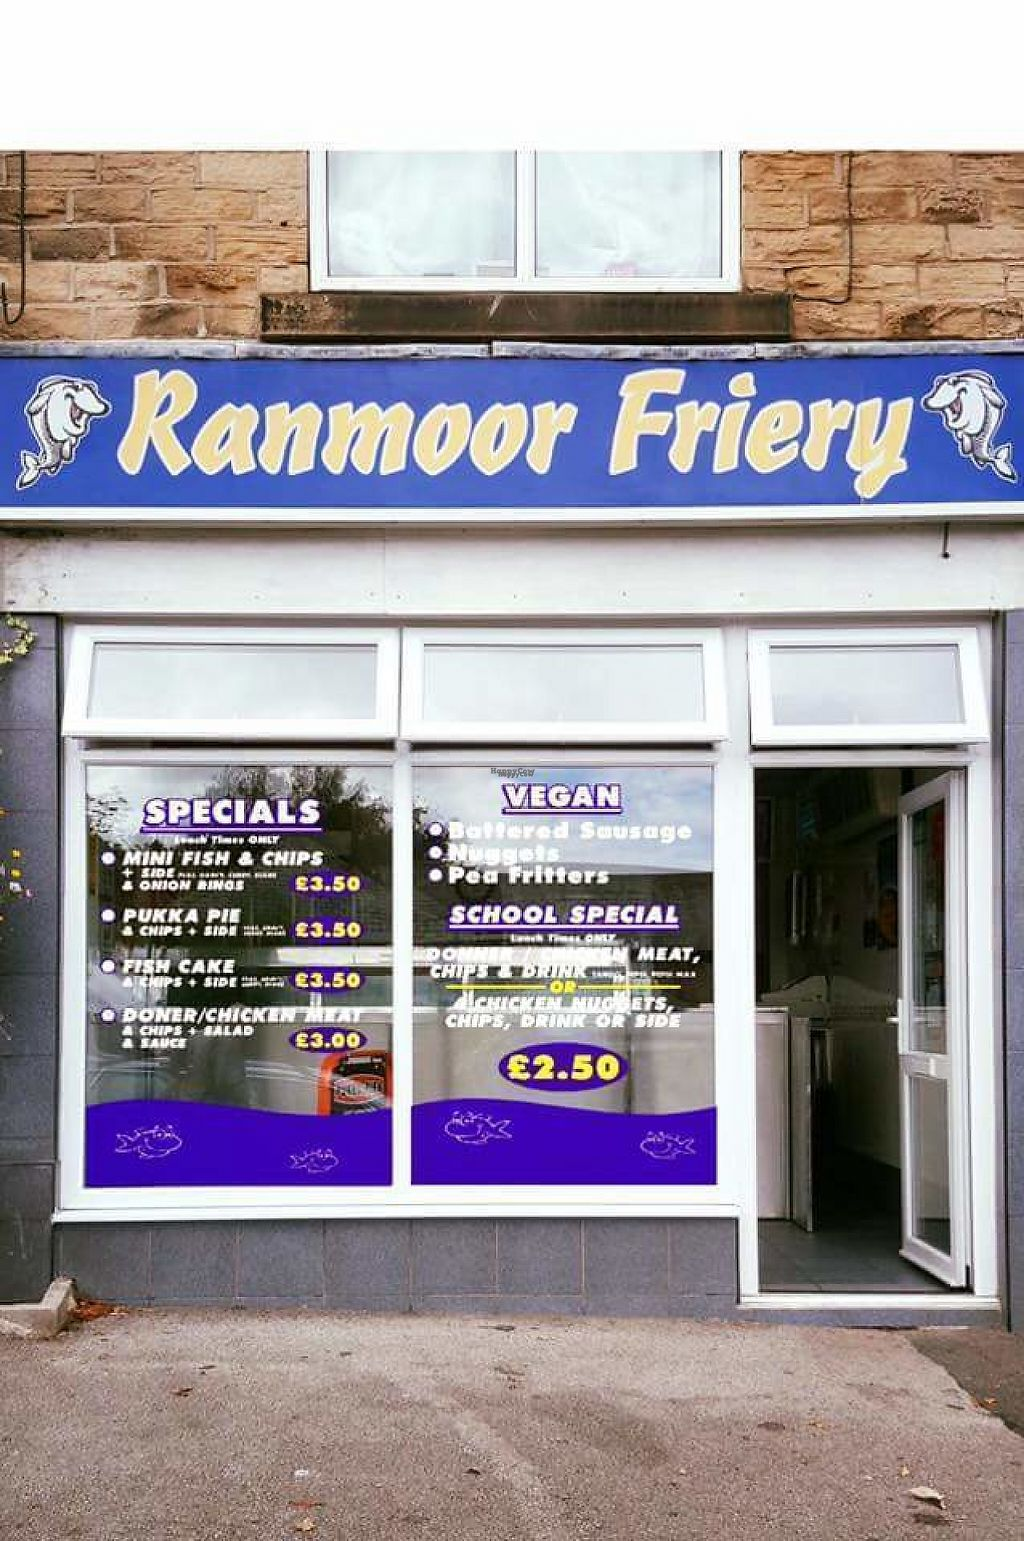 "Photo of Ranmoor Friery  by <a href=""/members/profile/community5"">community5</a> <br/>Ranmoor Friery <br/> April 10, 2017  - <a href='/contact/abuse/image/90142/246544'>Report</a>"